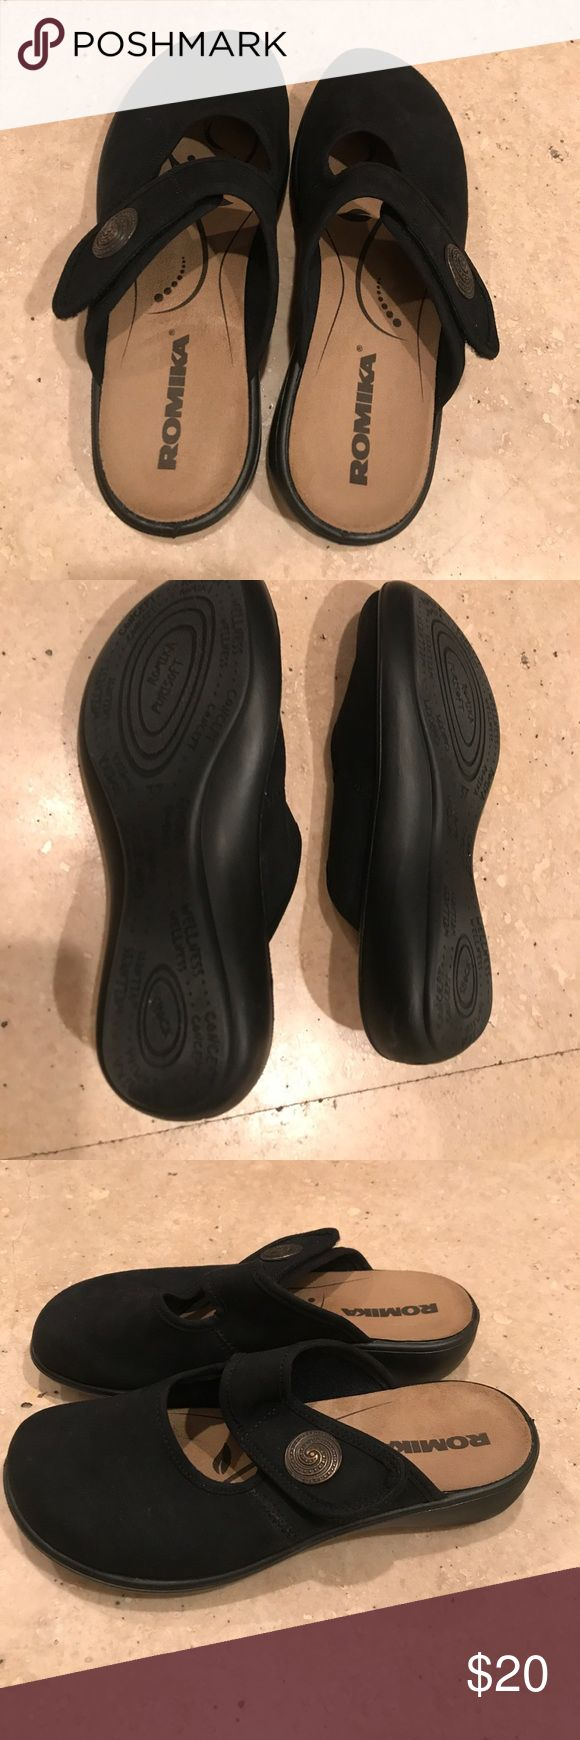 Comfy Romika clogs like new barely worn Black adjustable slide on so comfortable Romika Shoes Mules & Clogs